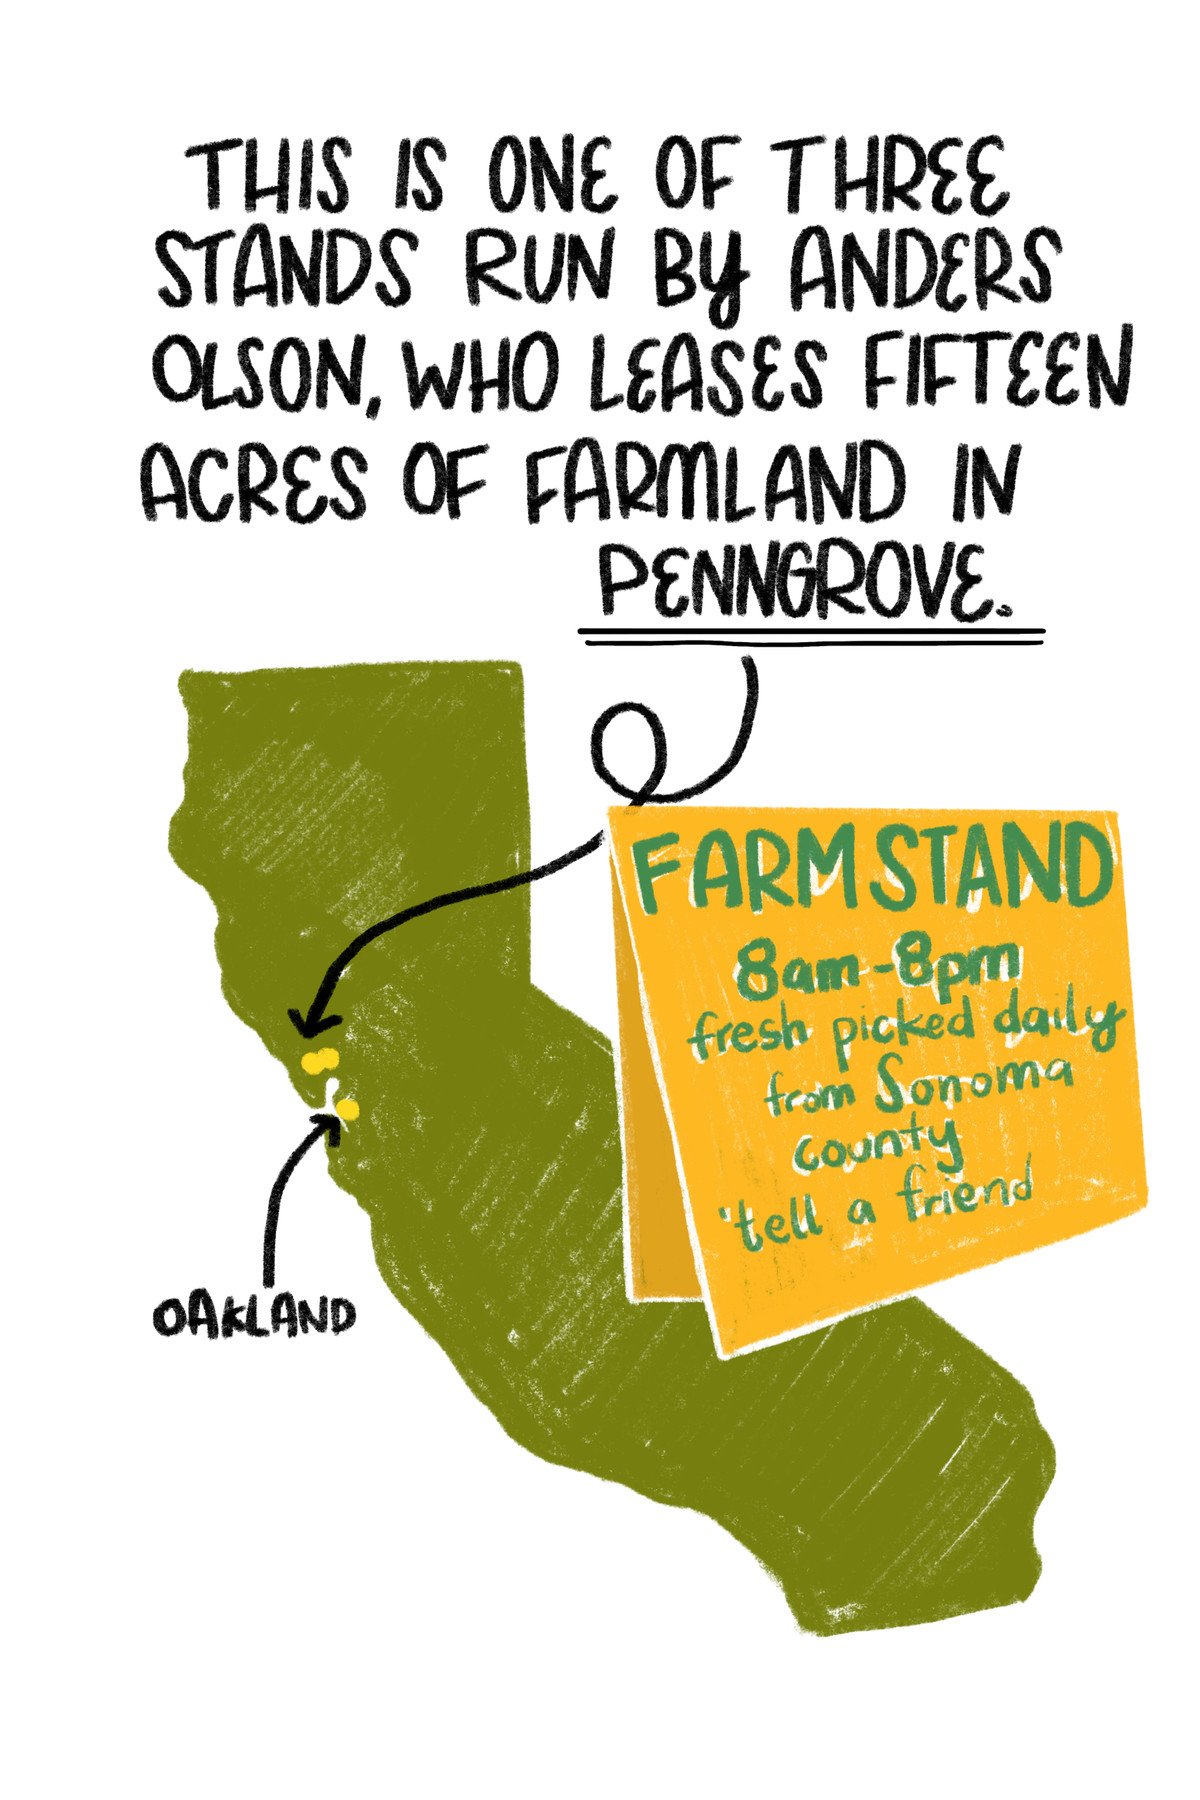 """""""This is one of three stands run by Anders Olson, who leases 15 acres of farmland in Penngrove. [Superimposed over an illustration of the state of California, a yellow sign that reads """"Farm stand, 8am - 8pm, fresh picked daily from Sonoma county; tell a friend.""""]"""